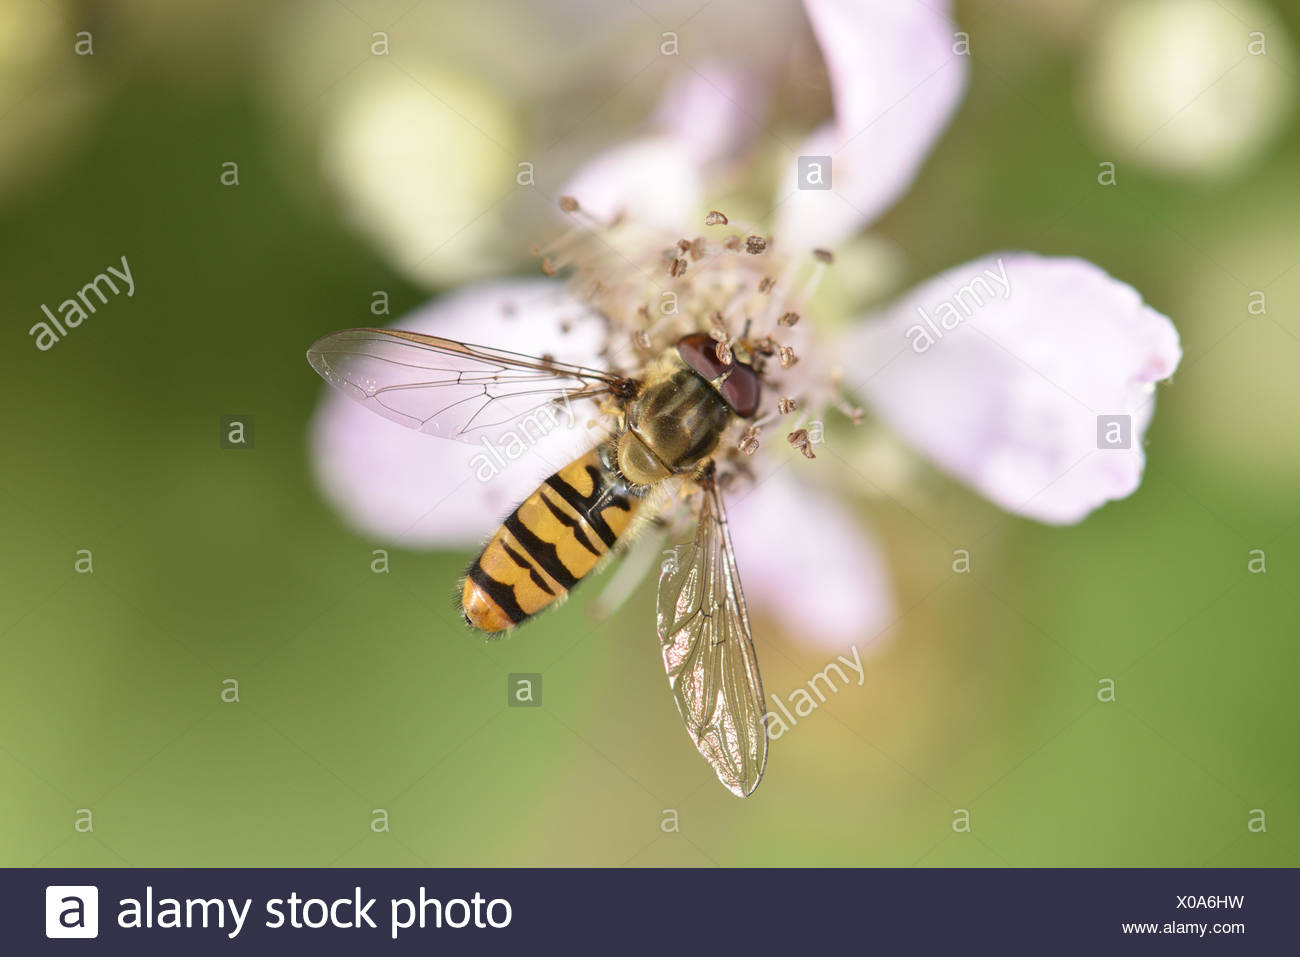 Marmalade Hoverfly - Episyrphus balteatus - Stock Image